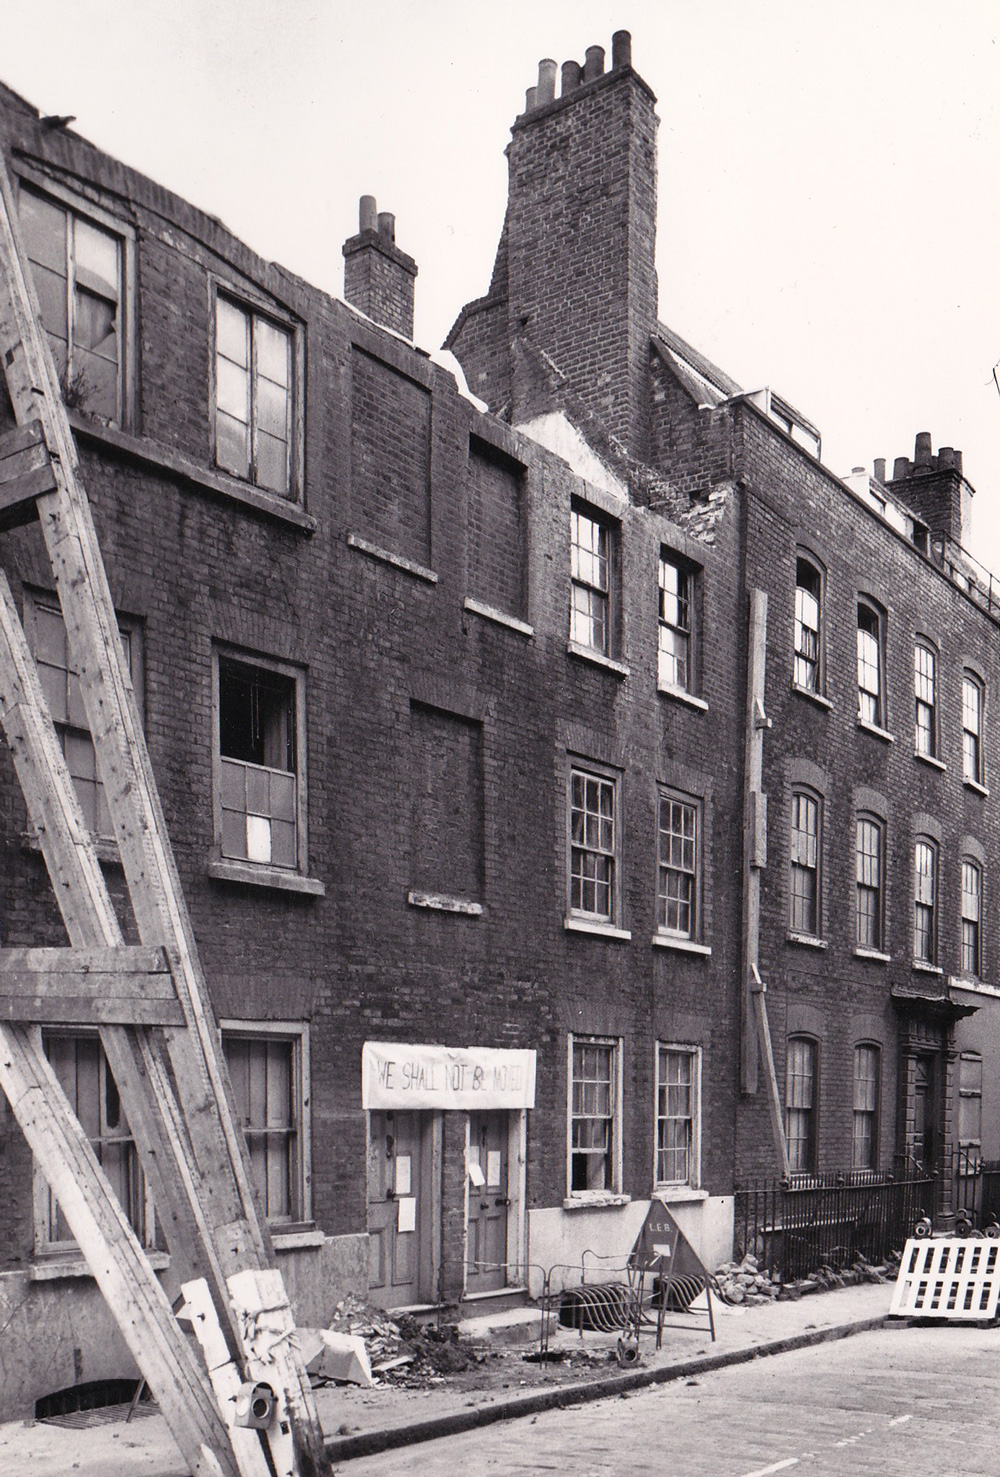 5 and 7 Elder Street, roofless and squatted by the Trust